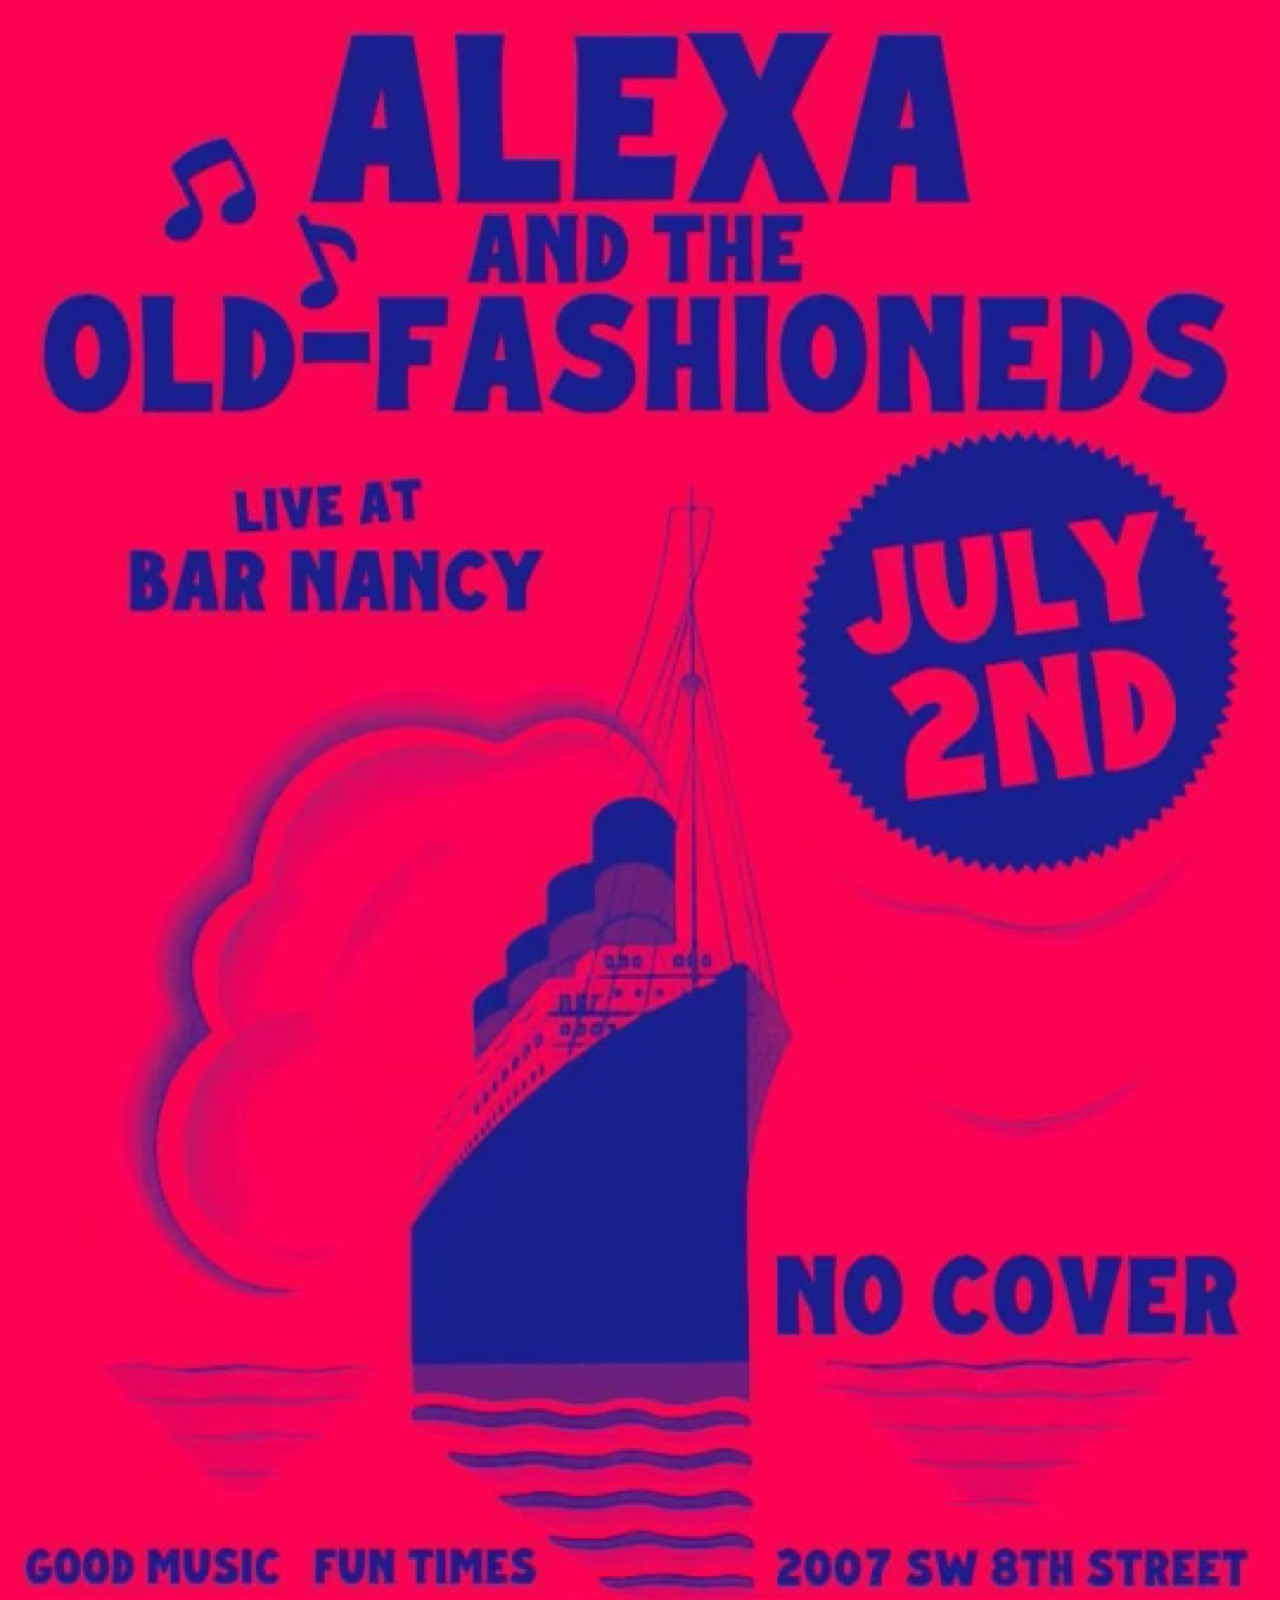 Alexa and The Old-Fashioneds at Bar Nancy July 2nd